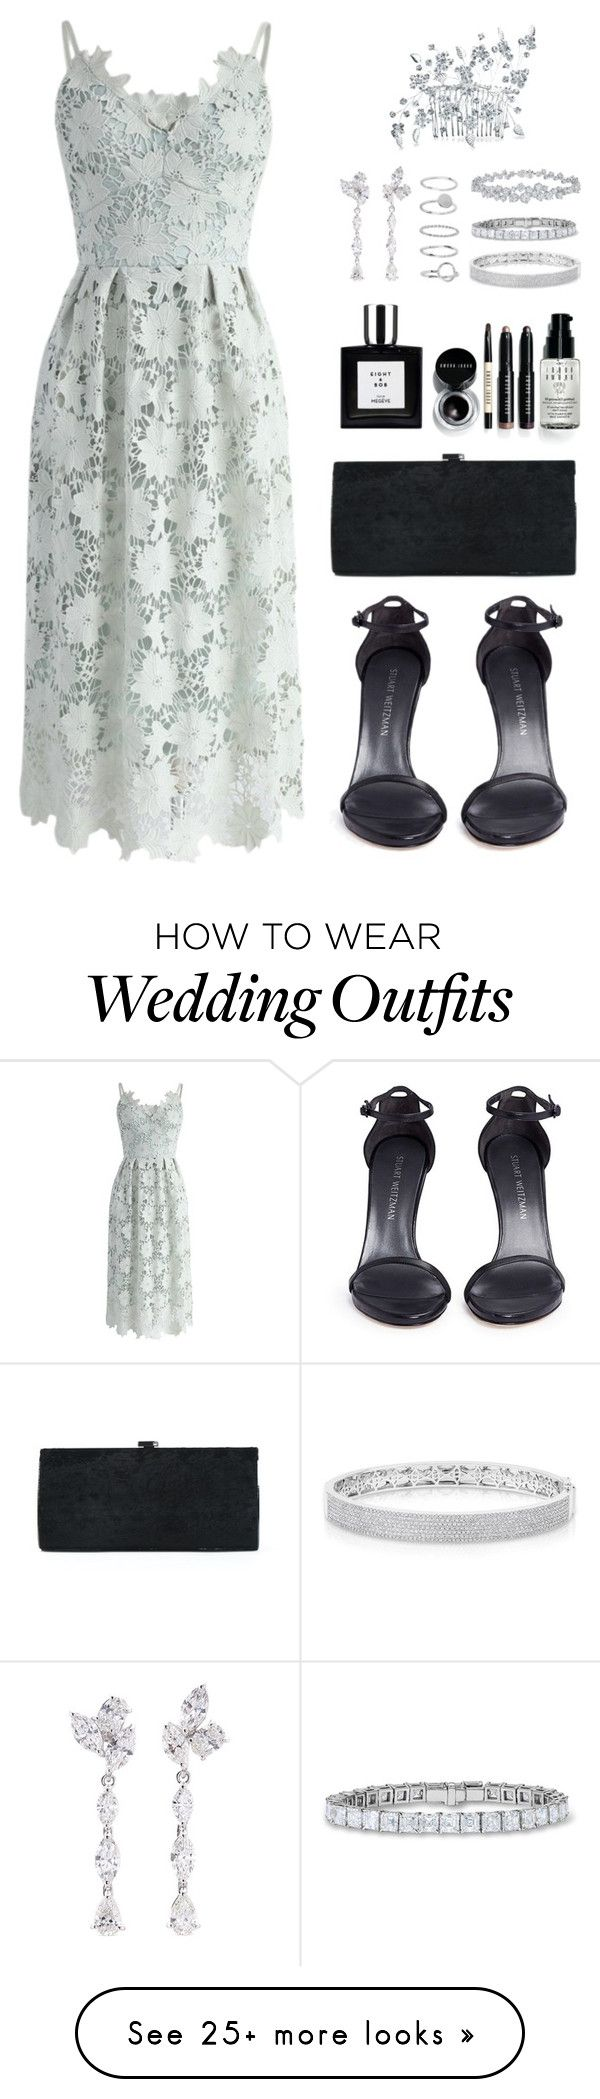 """Hoshi X Wedding Guests"" by jleeoutfitters on Polyvore featuring Chicwish, Bling Jewelry, Stuart Weitzman, Sondra Roberts, Bobbi Brown Cosmetics, Anyallerie, Anne Sisteron and Harry Winston"